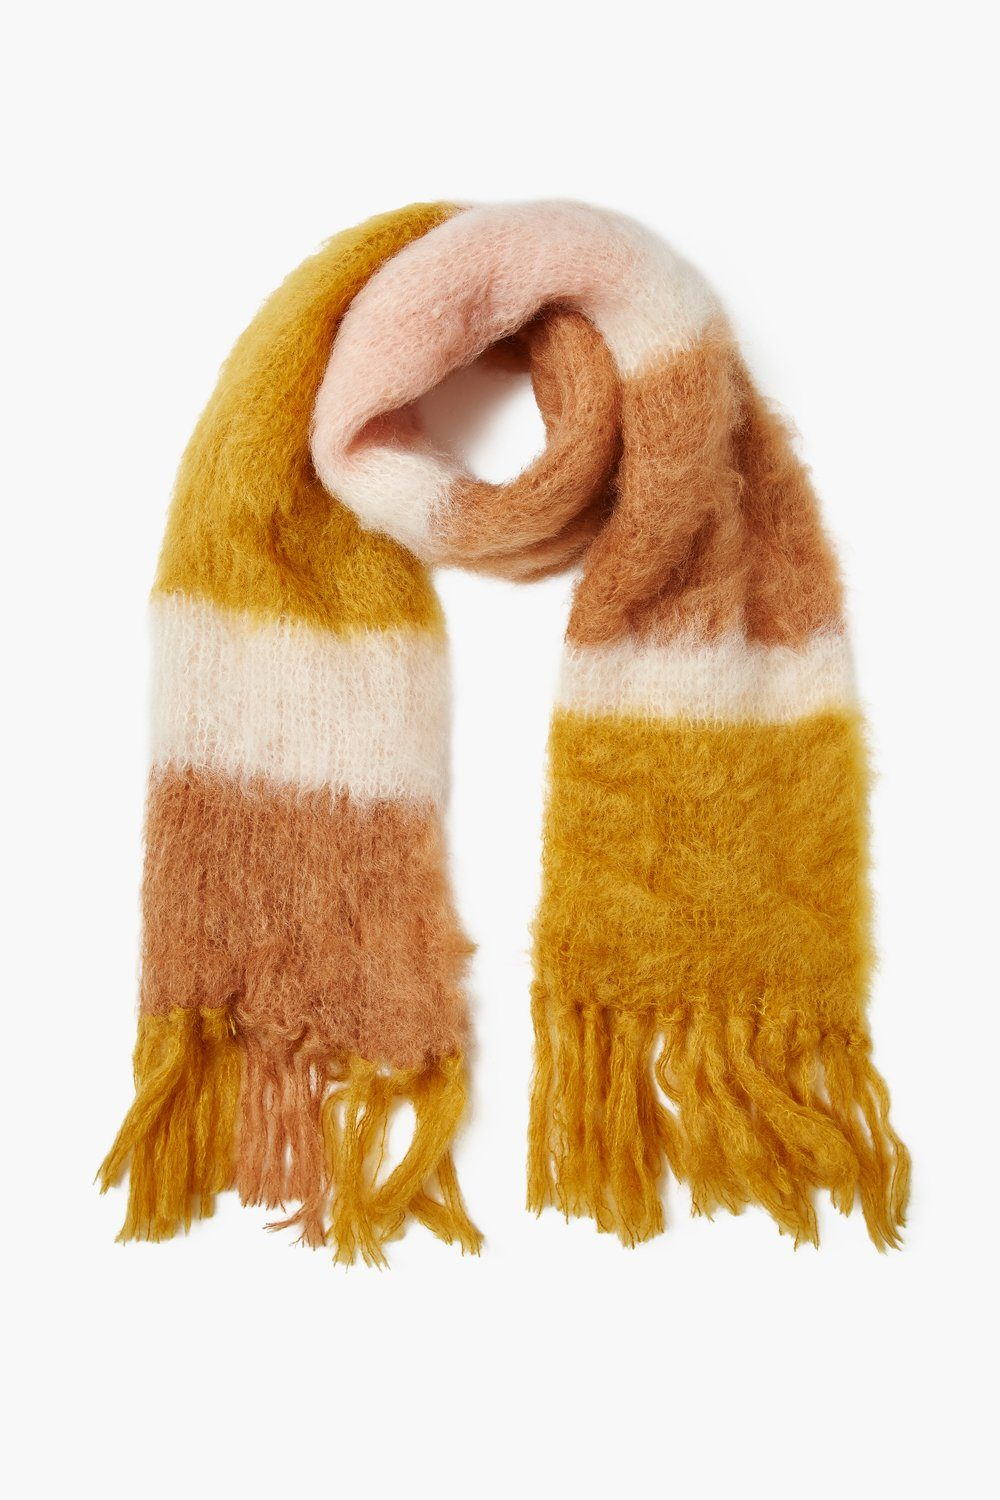 Chai Tea Color Block Mohair Scarf